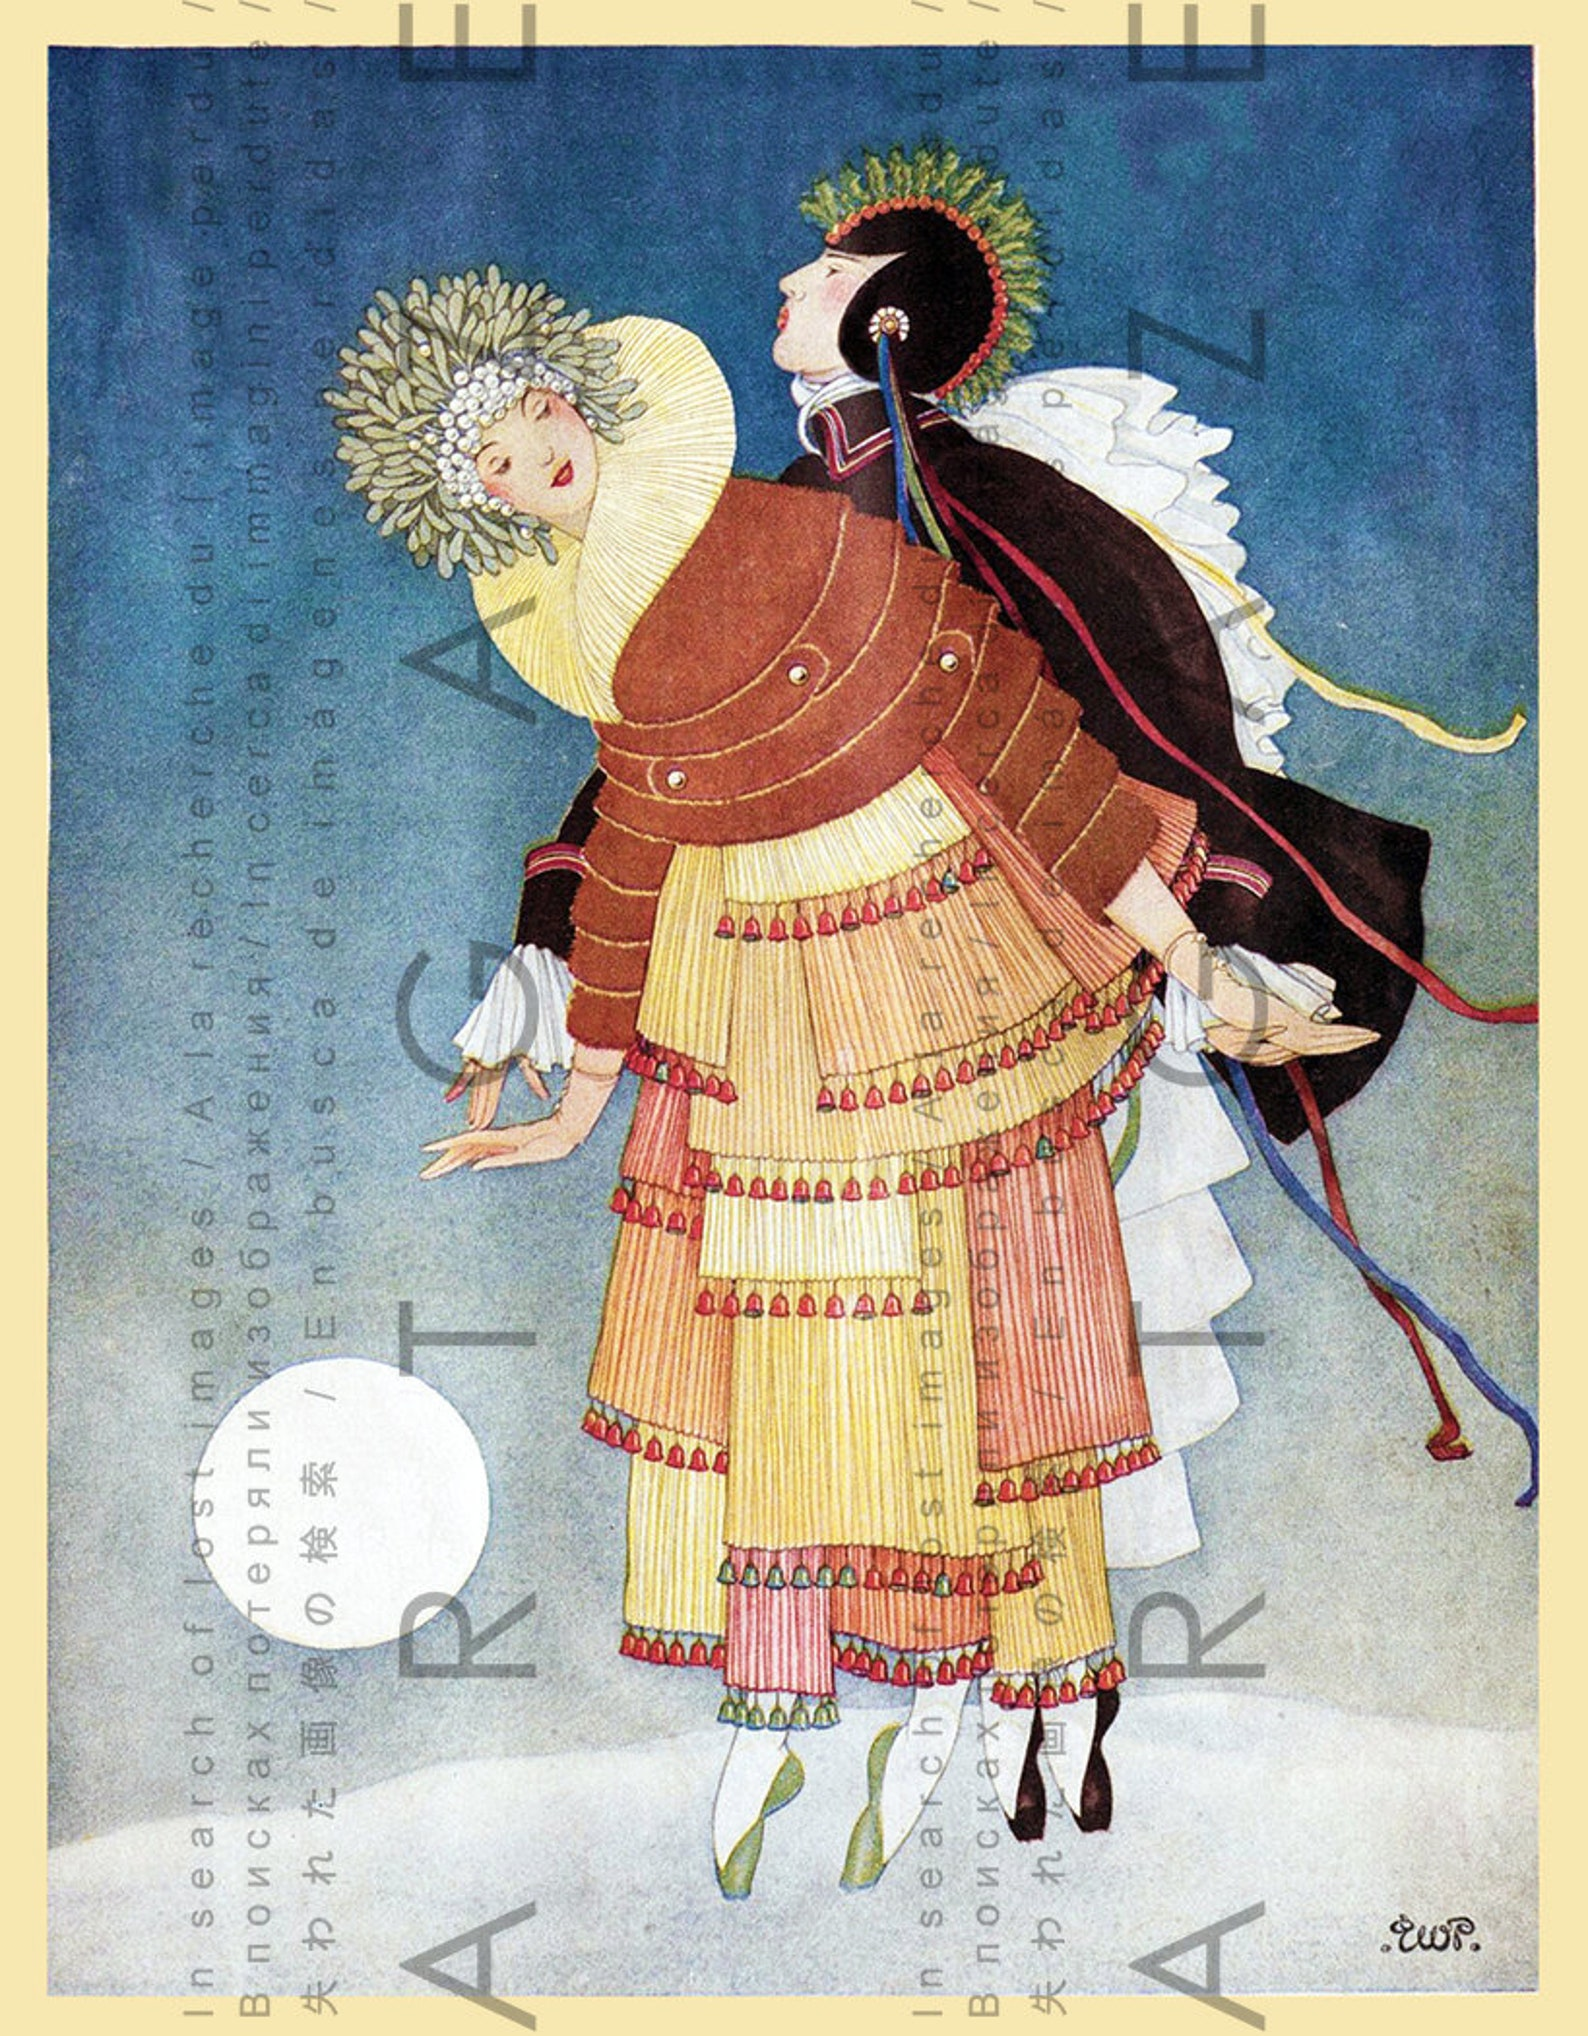 ballet vintage illustration art deco vogue cover russian ballet print. vintage dance digital download. winter download.